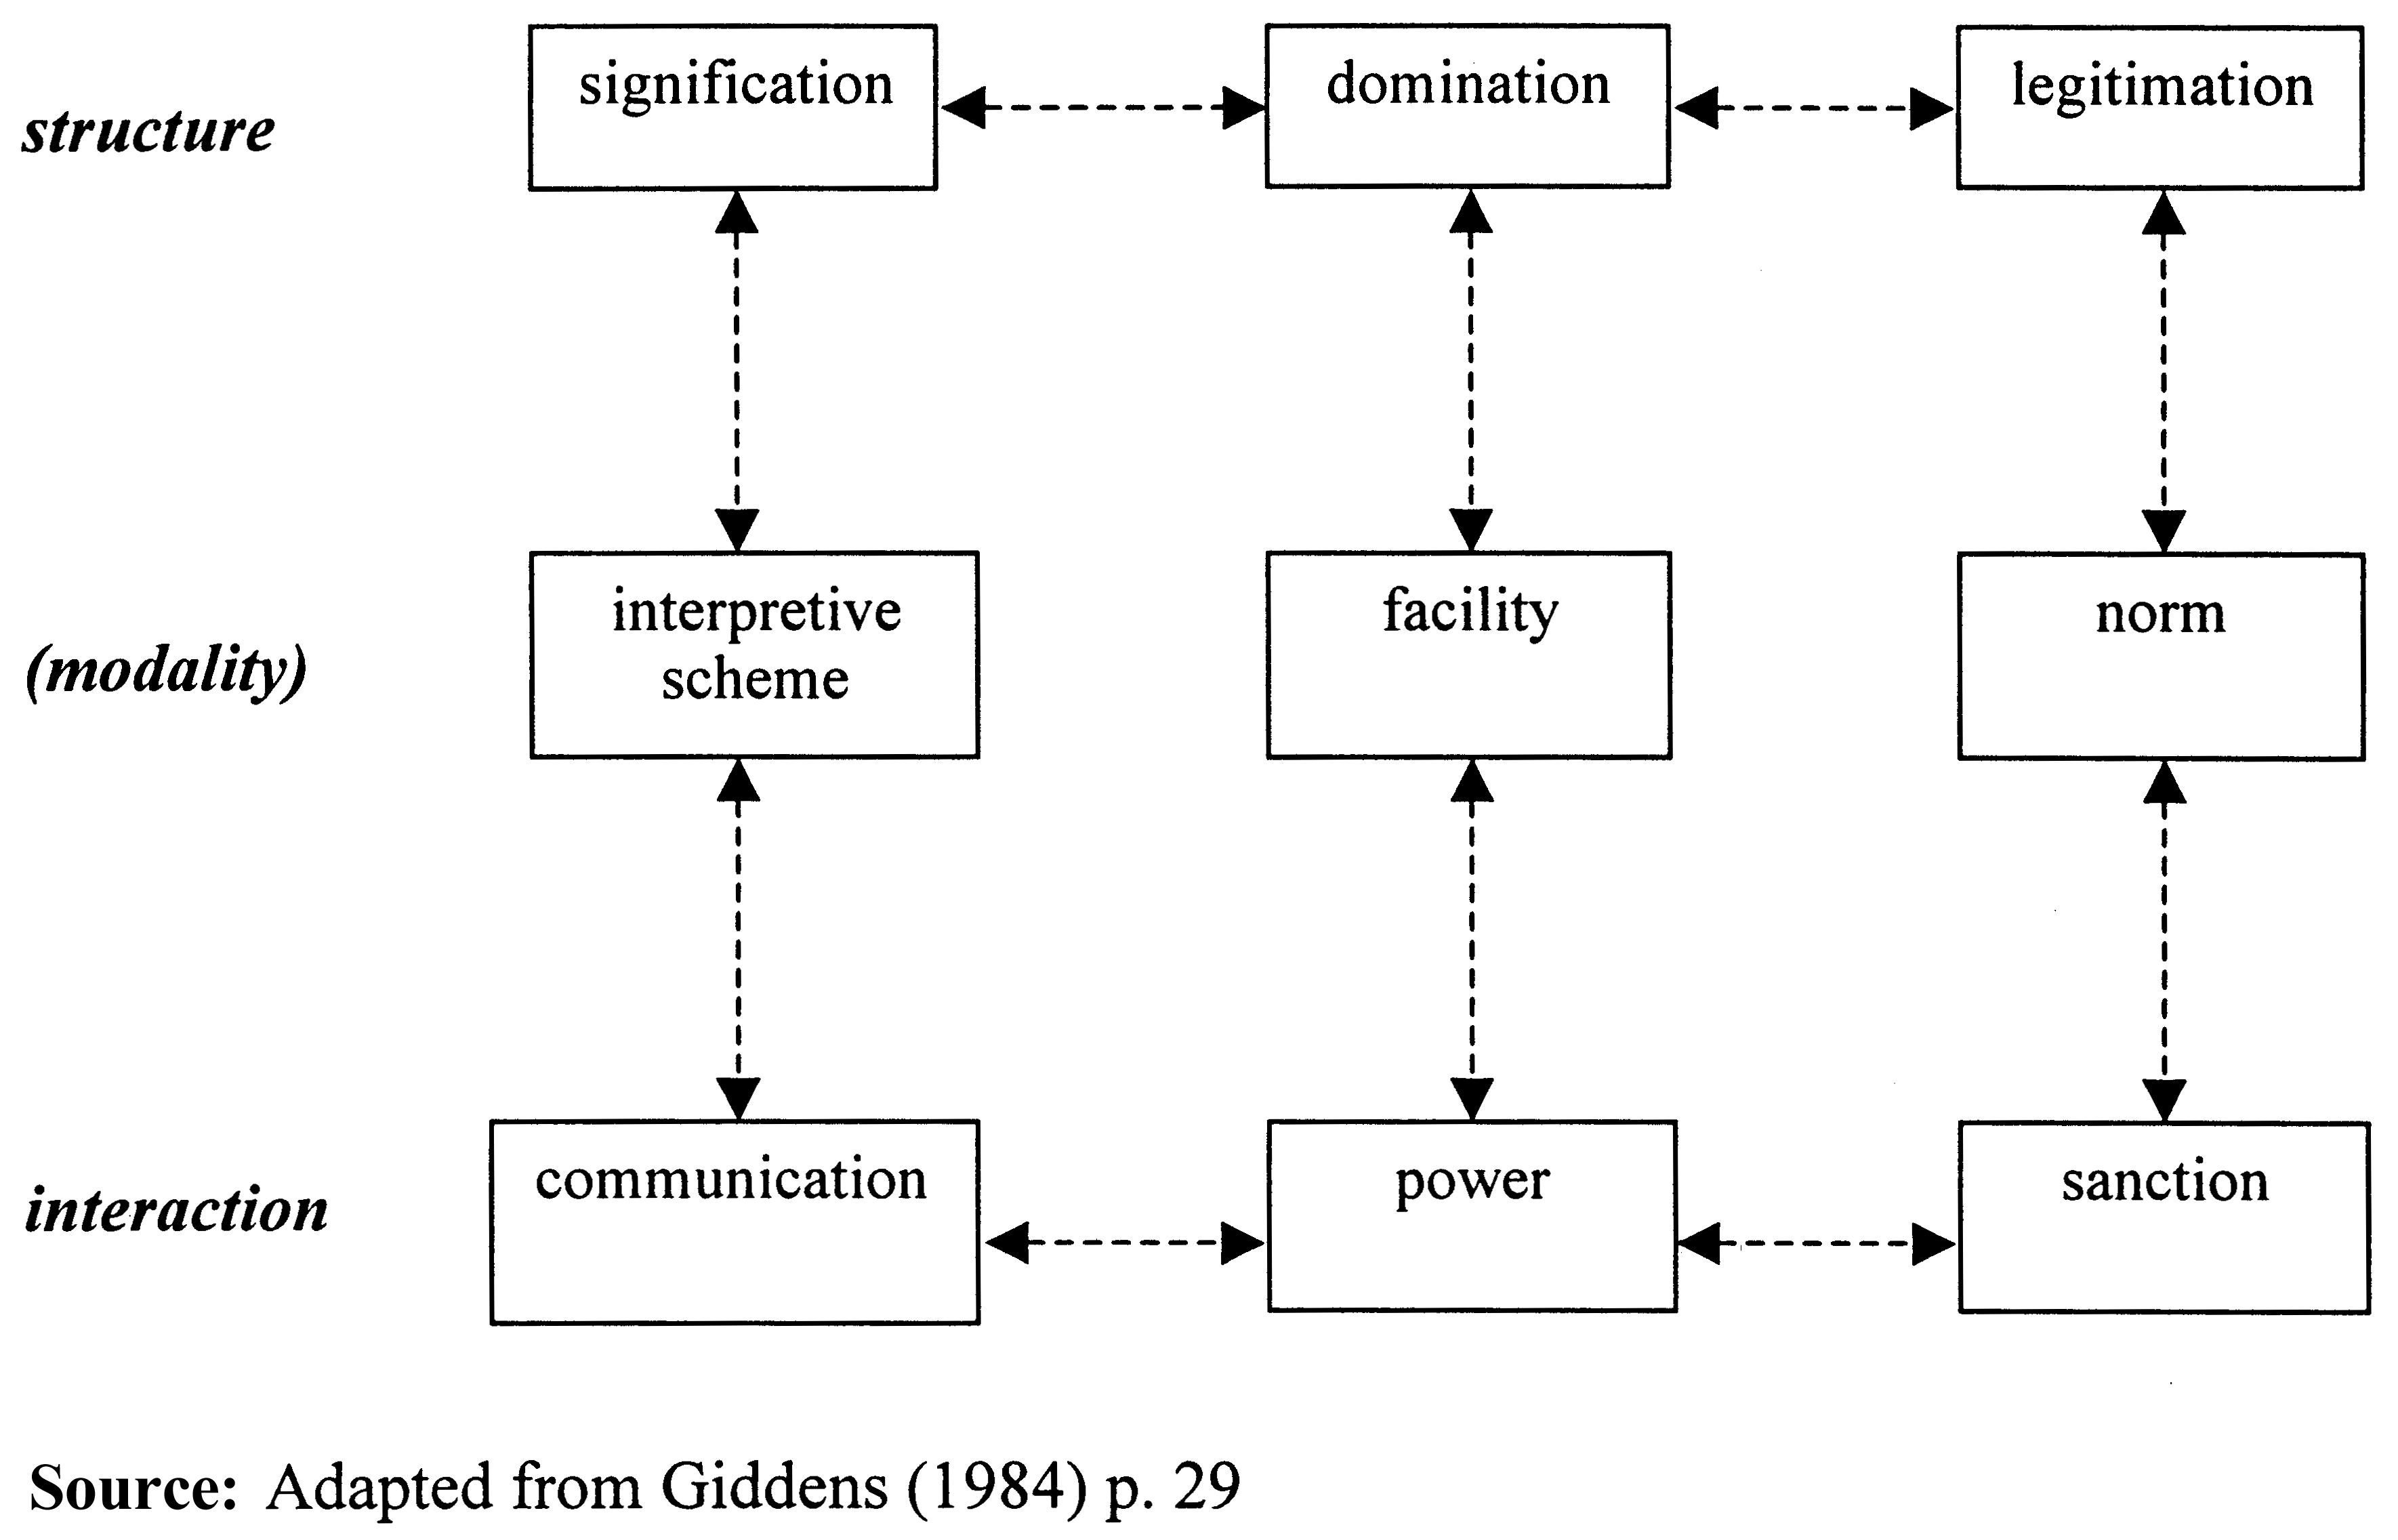 Structures of power and domination